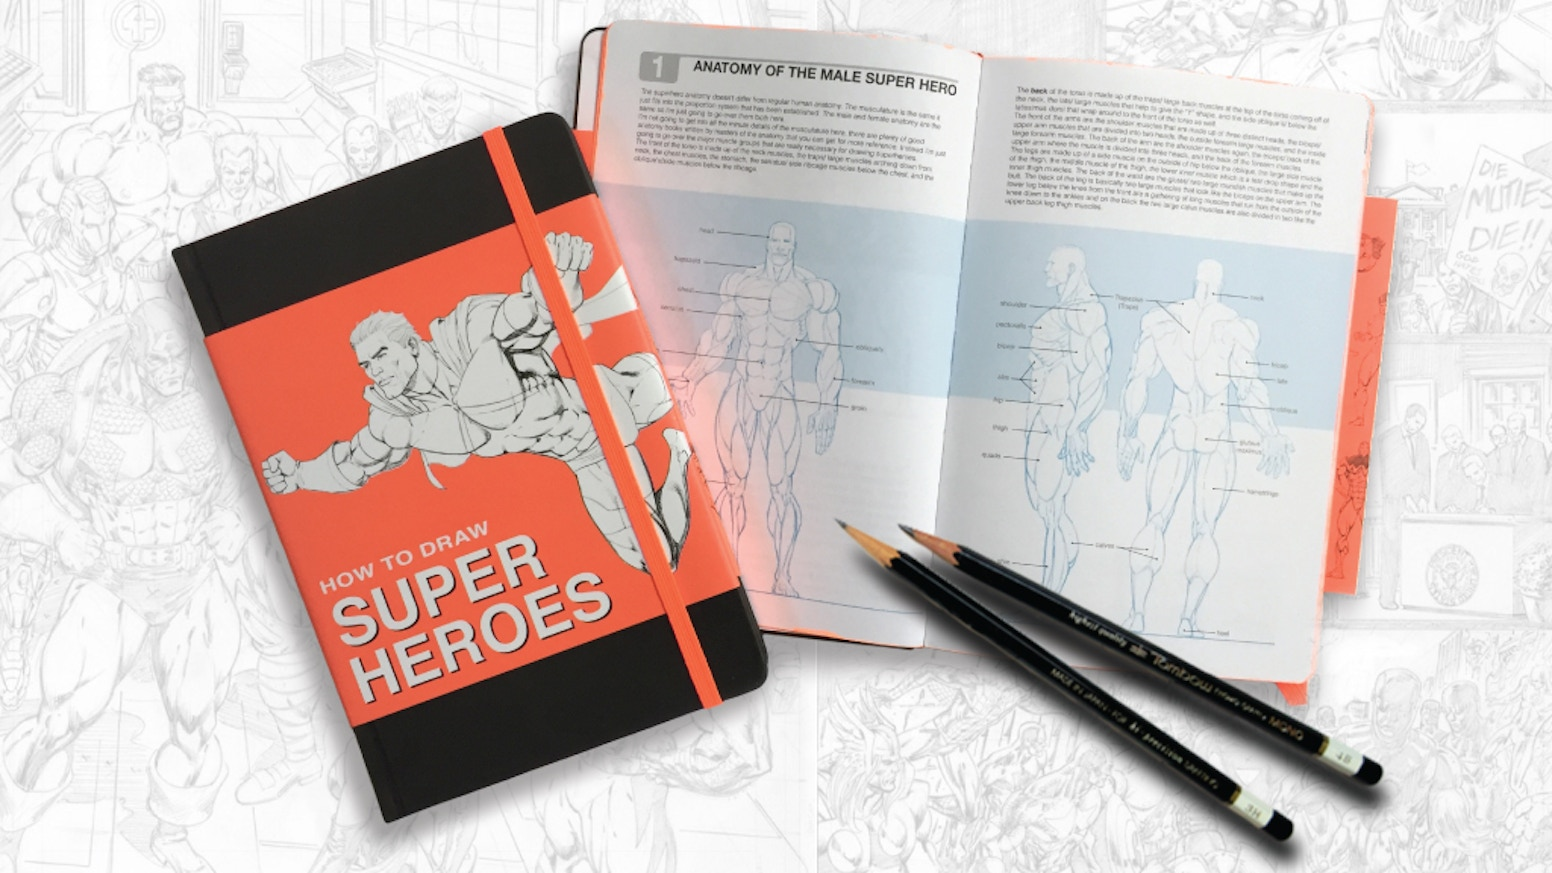 Draw right inside over guidelines. Featuring artwork by Comic industry veteran Andy Smith who's worked for Marvel, DC Comics, Disney and more. Learn and sketch at the same time.